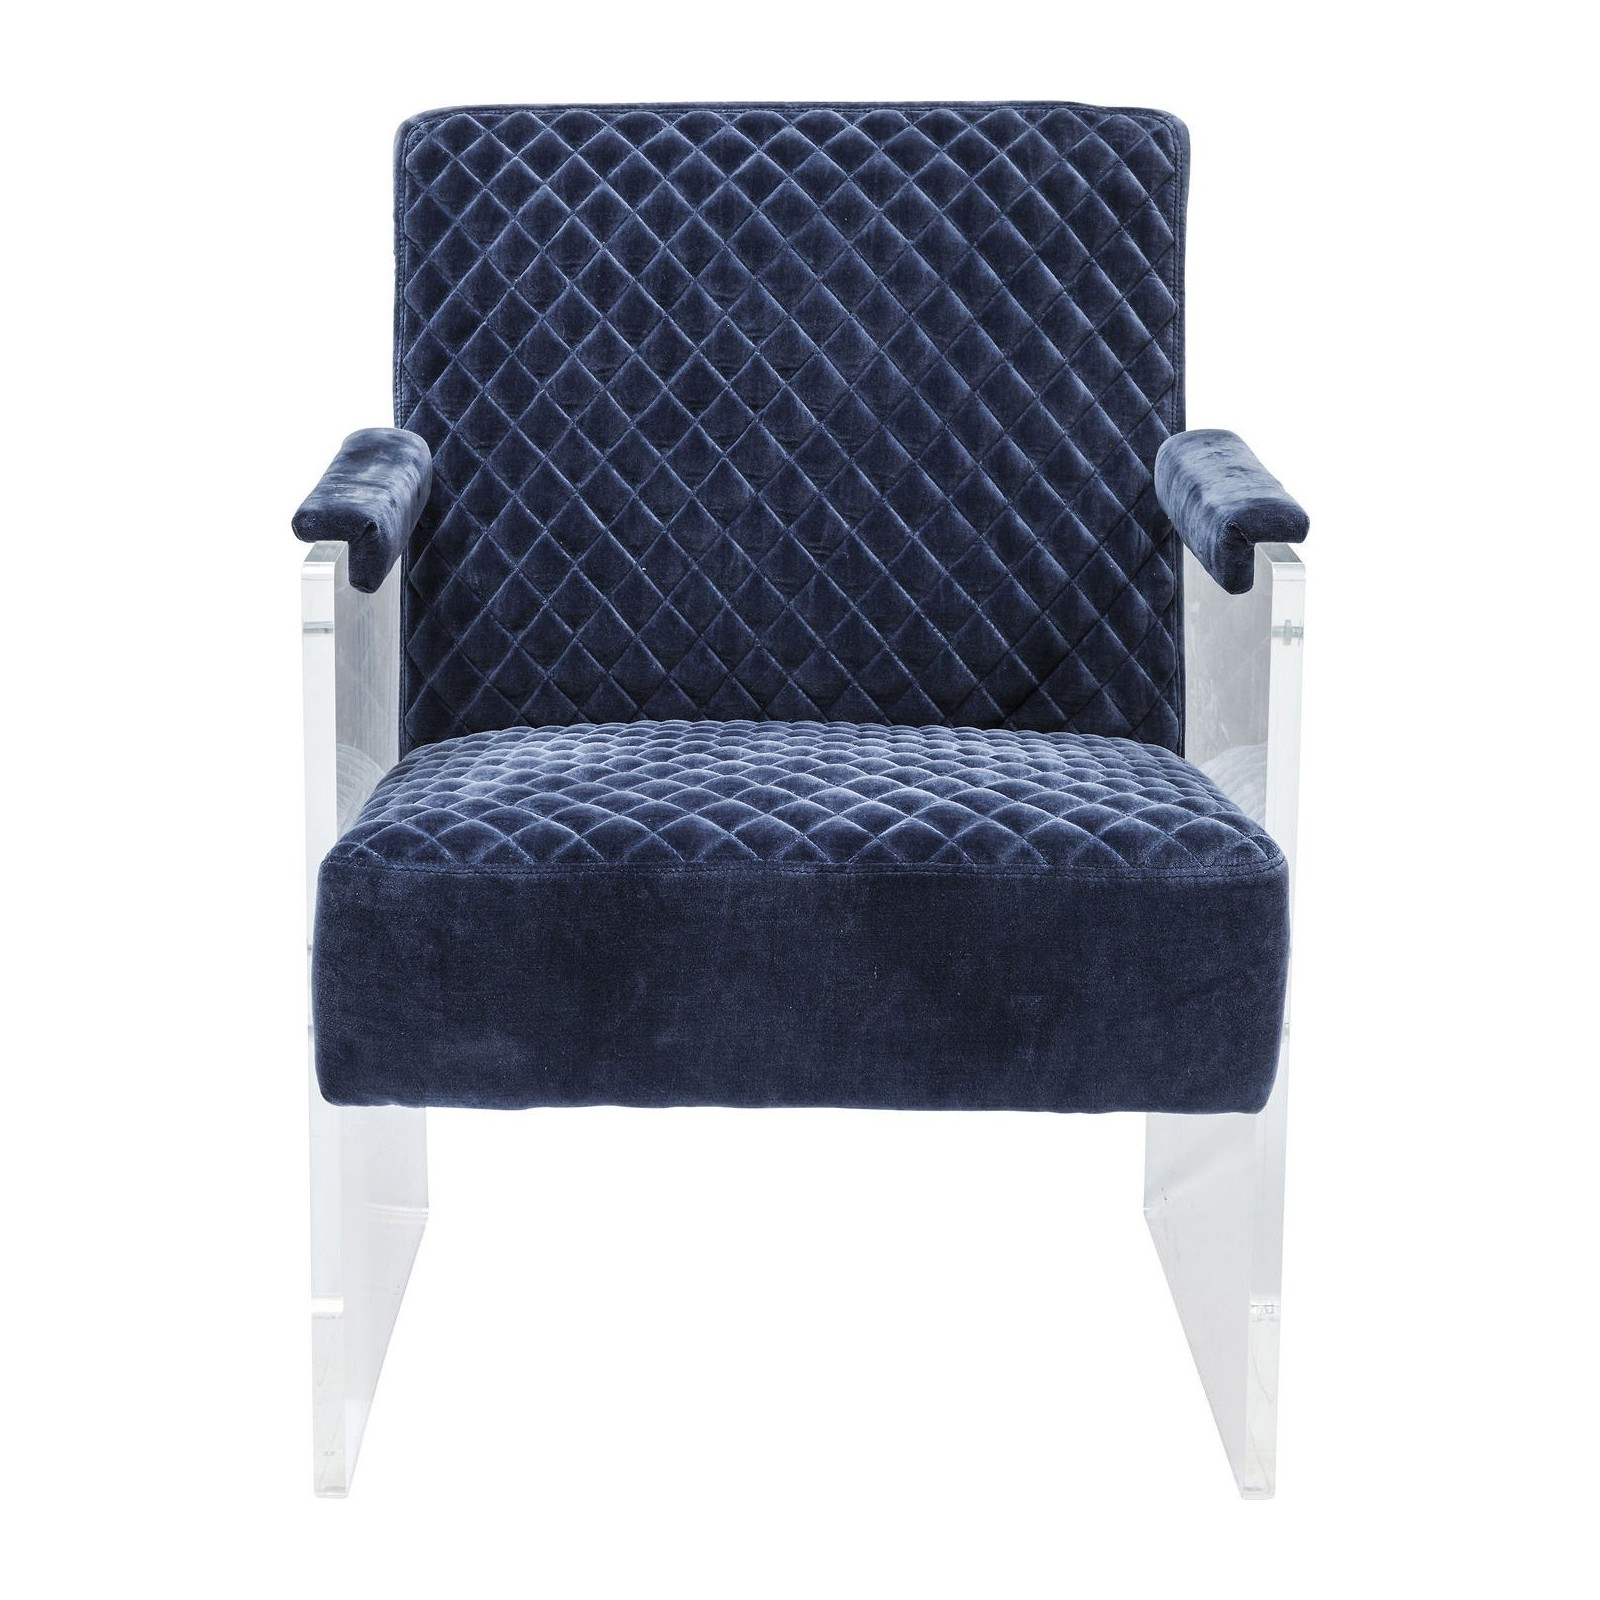 fauteuil moderne en velours bleu stich visible kare design. Black Bedroom Furniture Sets. Home Design Ideas